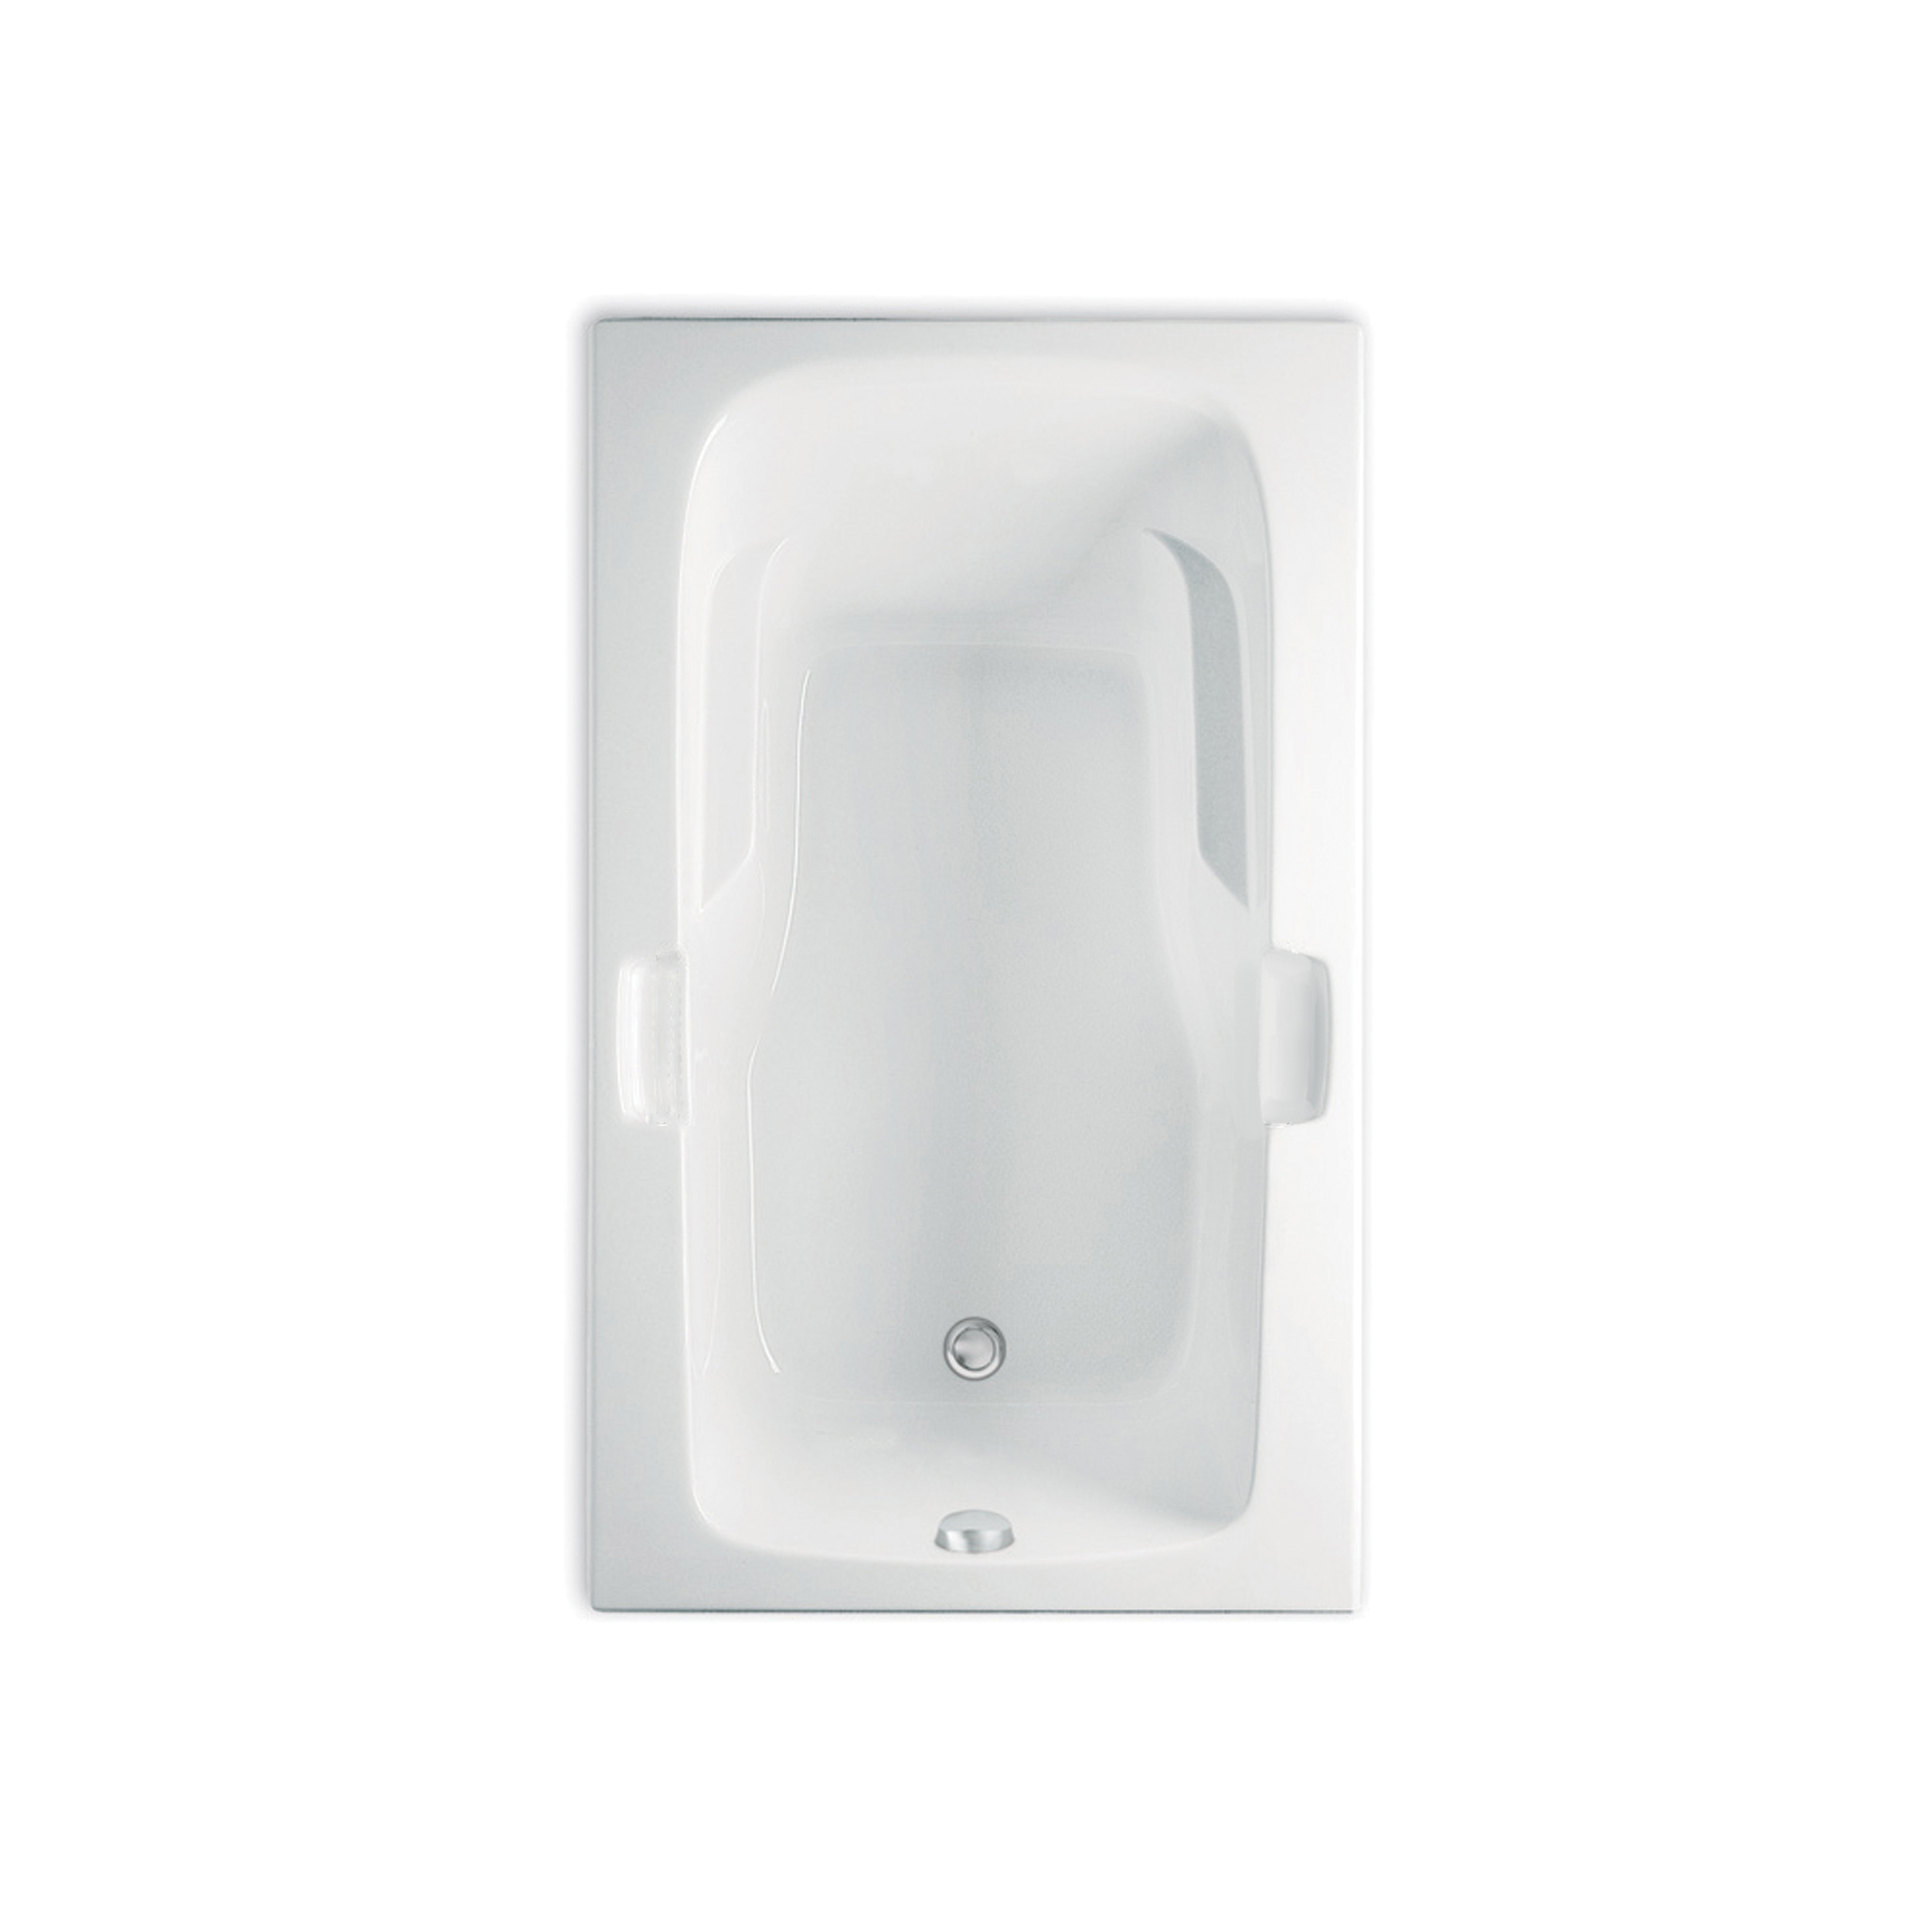 Aquatic Montrose II Element 4272620V-WH Builders Choice Soaking Bathtub, 72 in L x 36 in W, Universal Drain, White